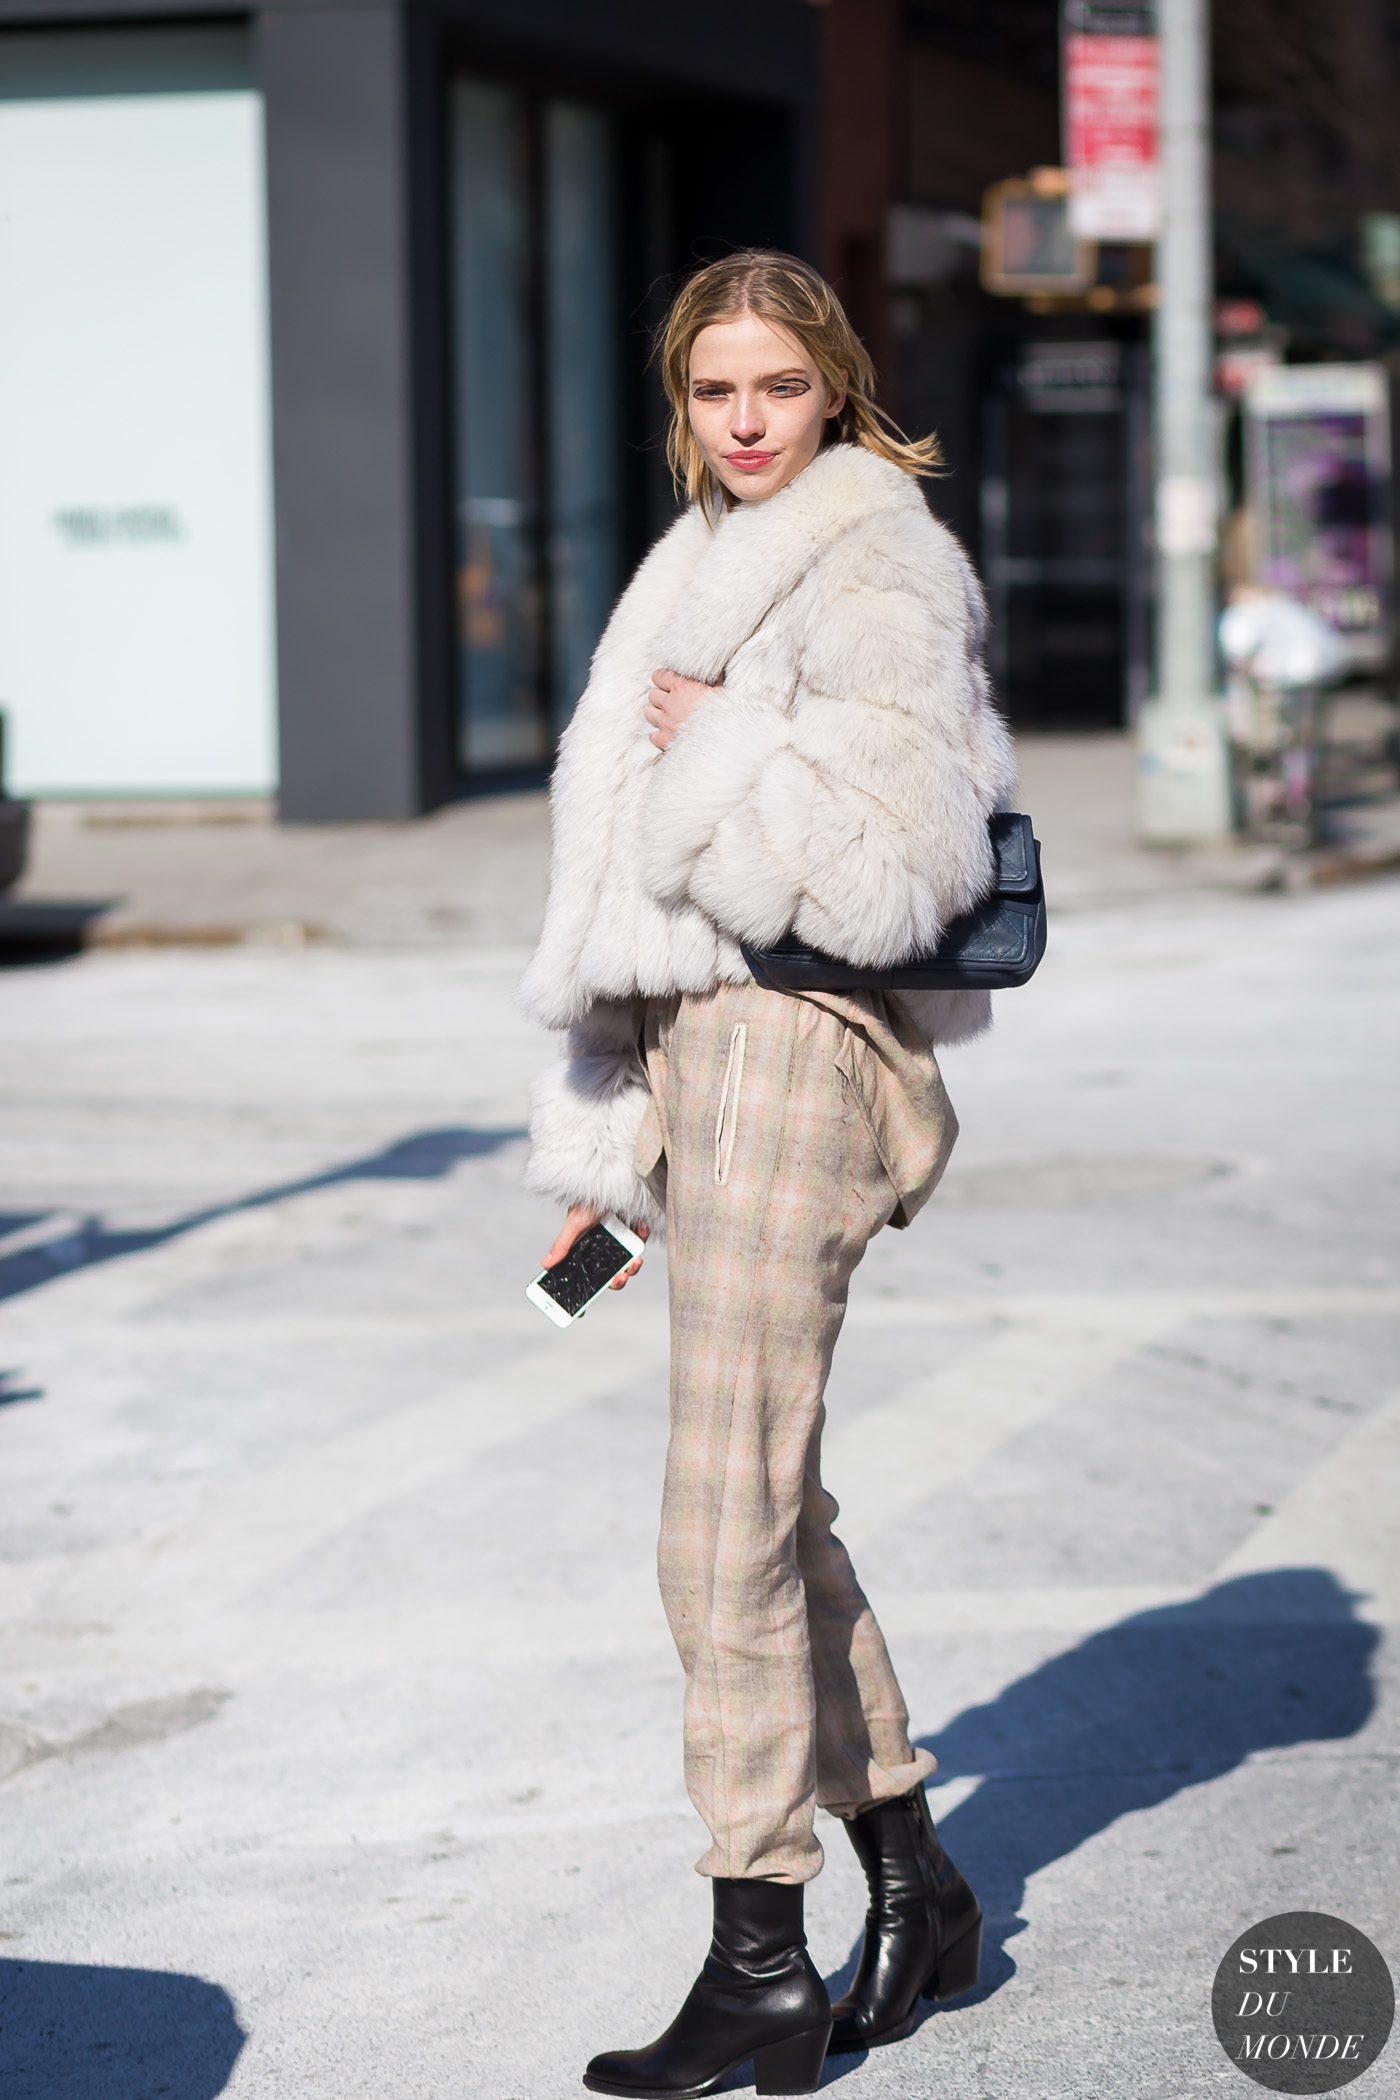 Sasha Luss by STYLEDUMONDE Street Style Fashion Photography